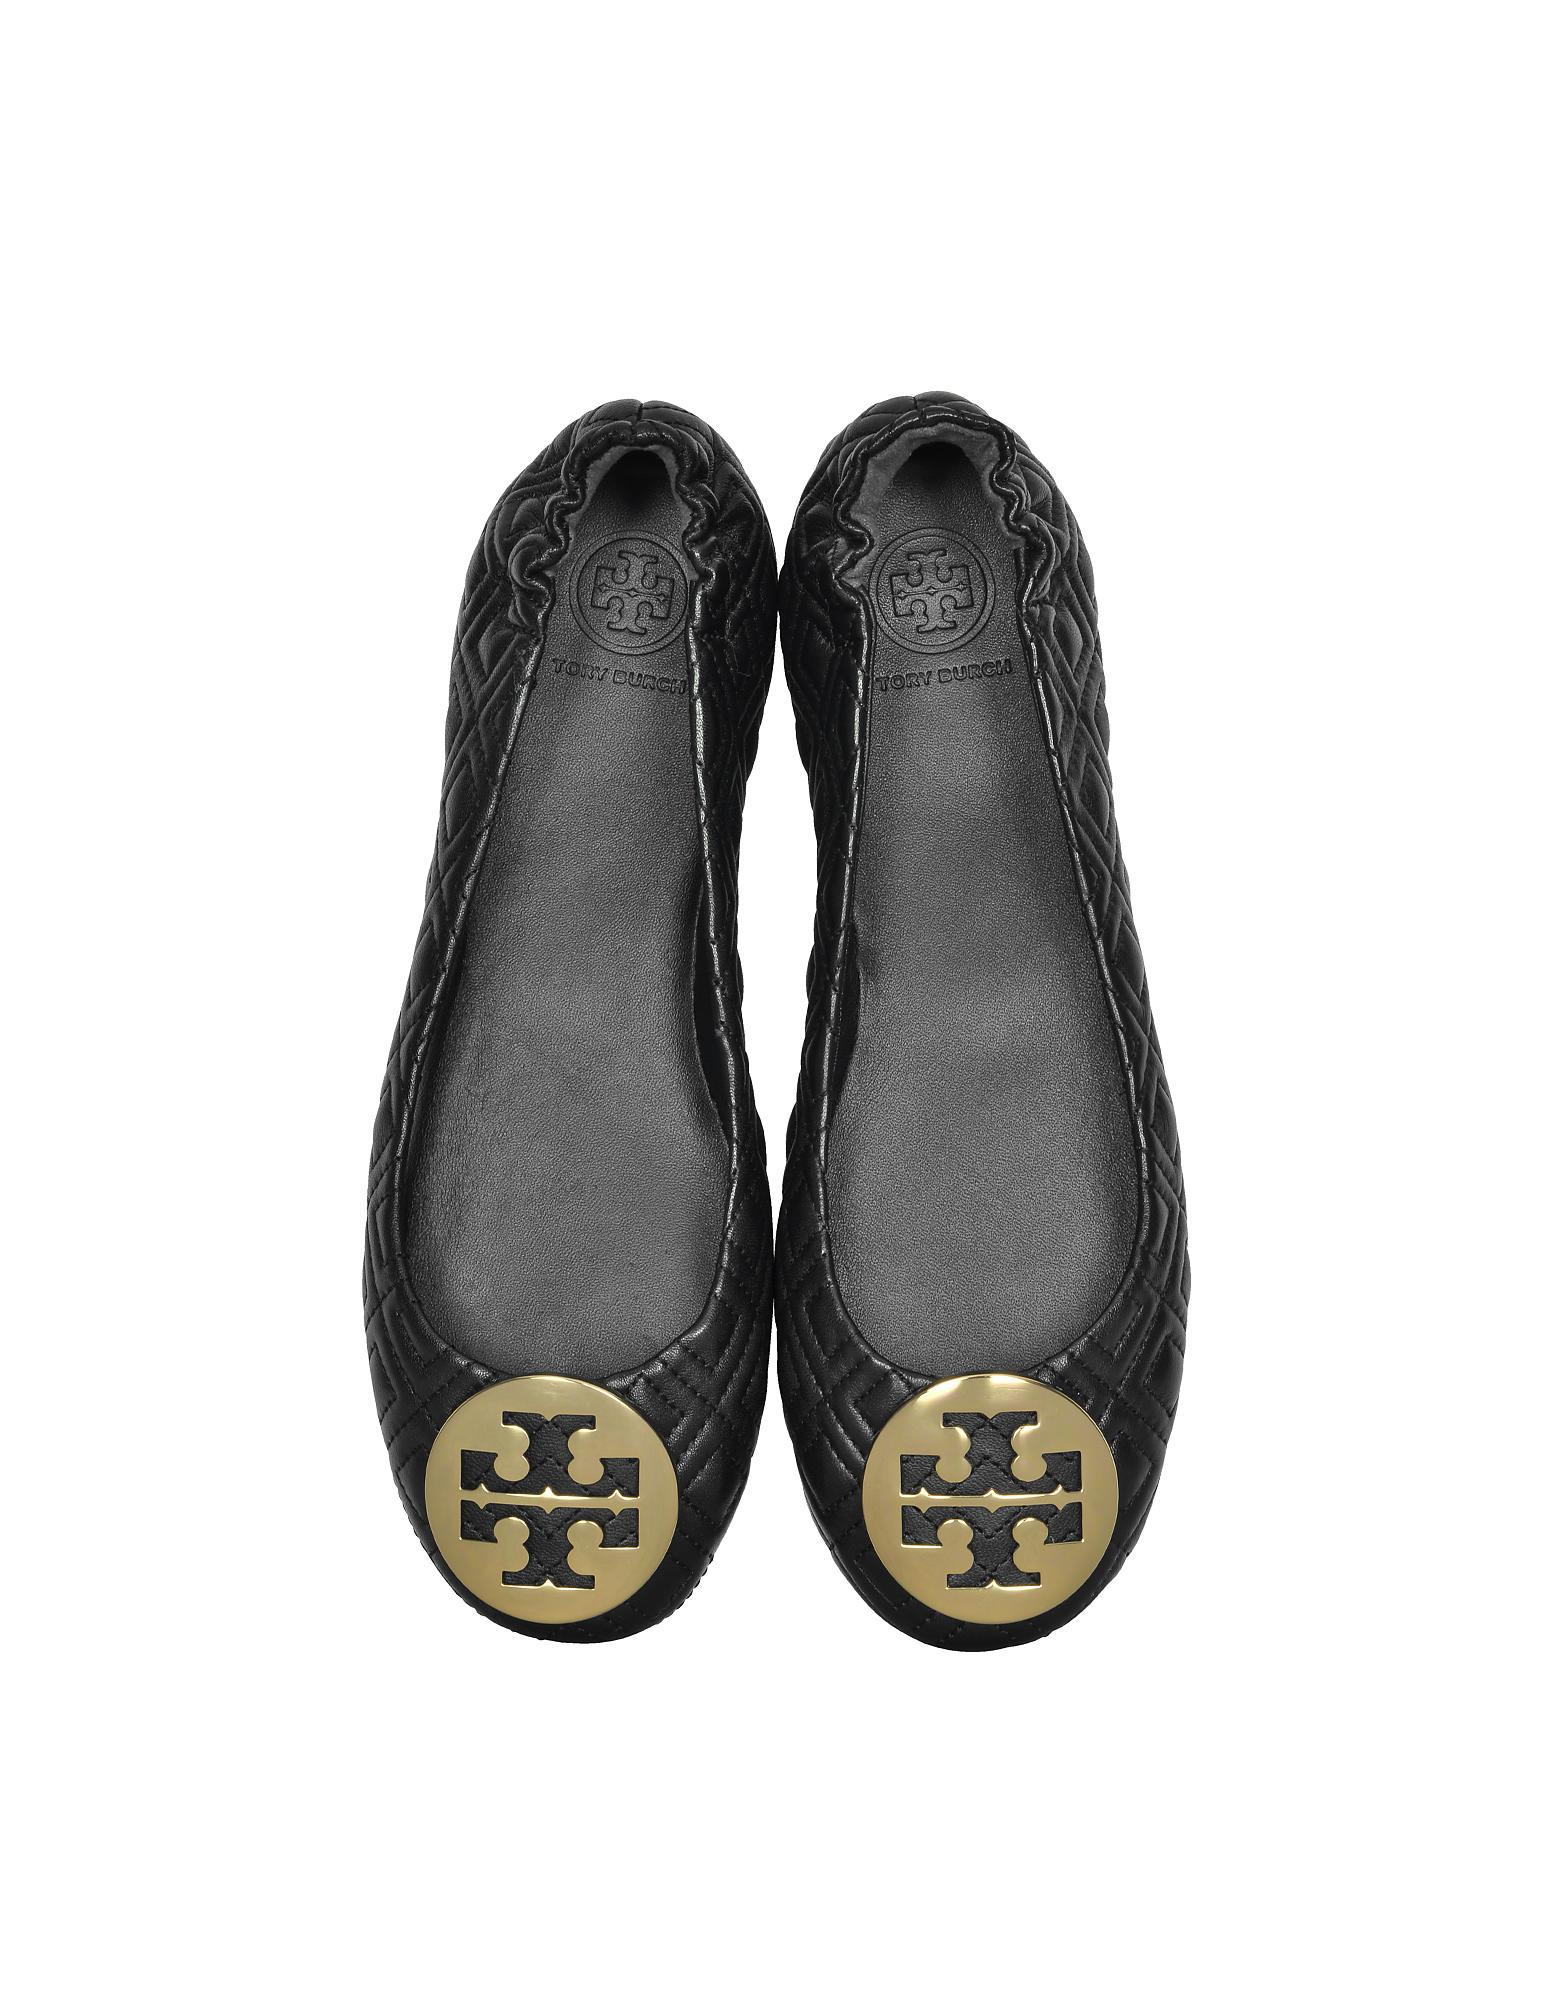 f9d30e09cdaf8 Tory Burch. Women s Perfect Black Quilted Nappa Leather Minnie Ballerinas